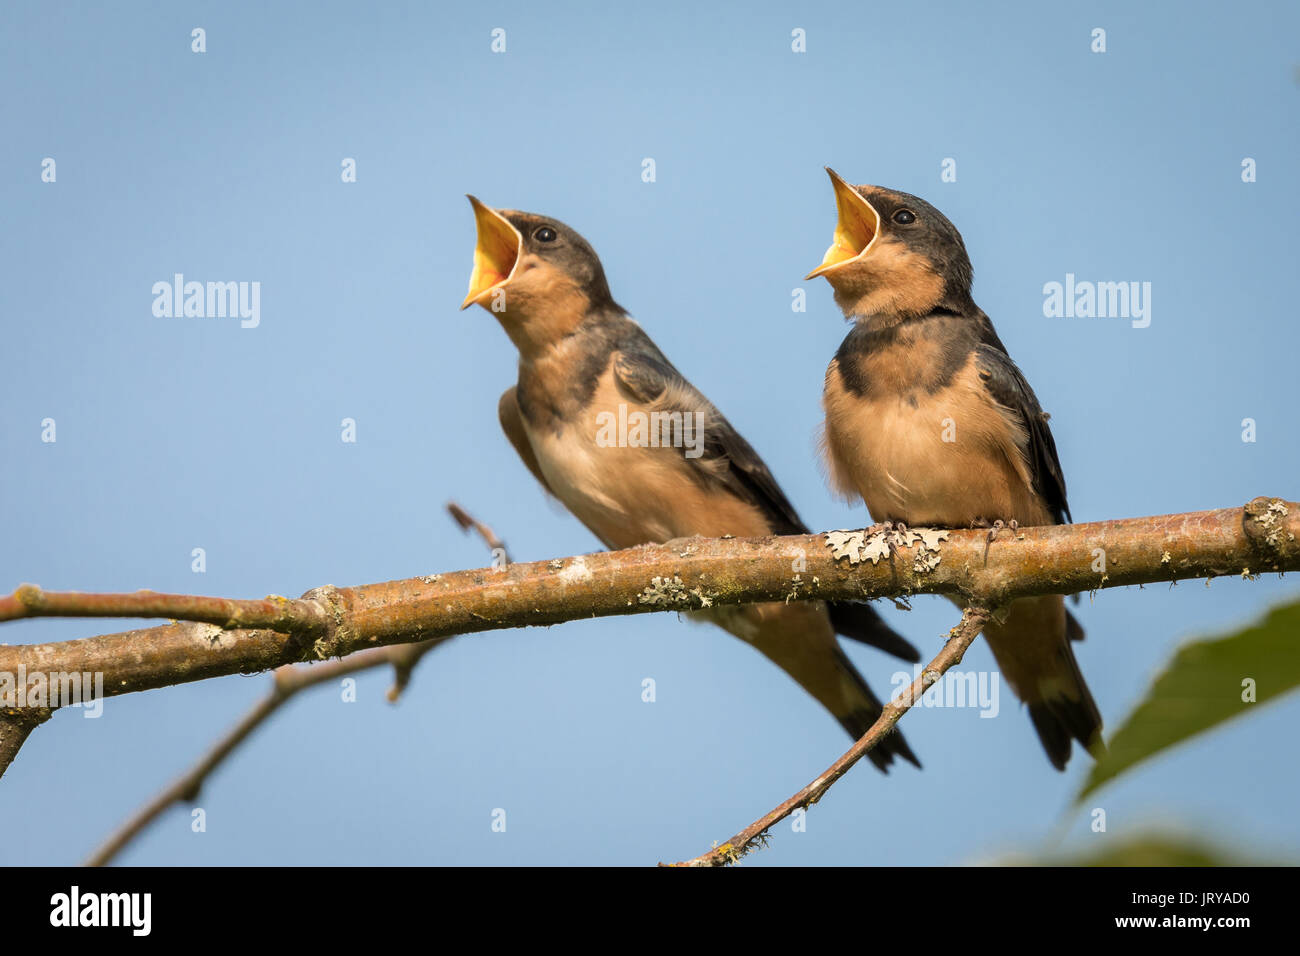 Young, fledgling Barn Swallows (Hirundo rustica) gape as they wait to be fed. - Stock Image